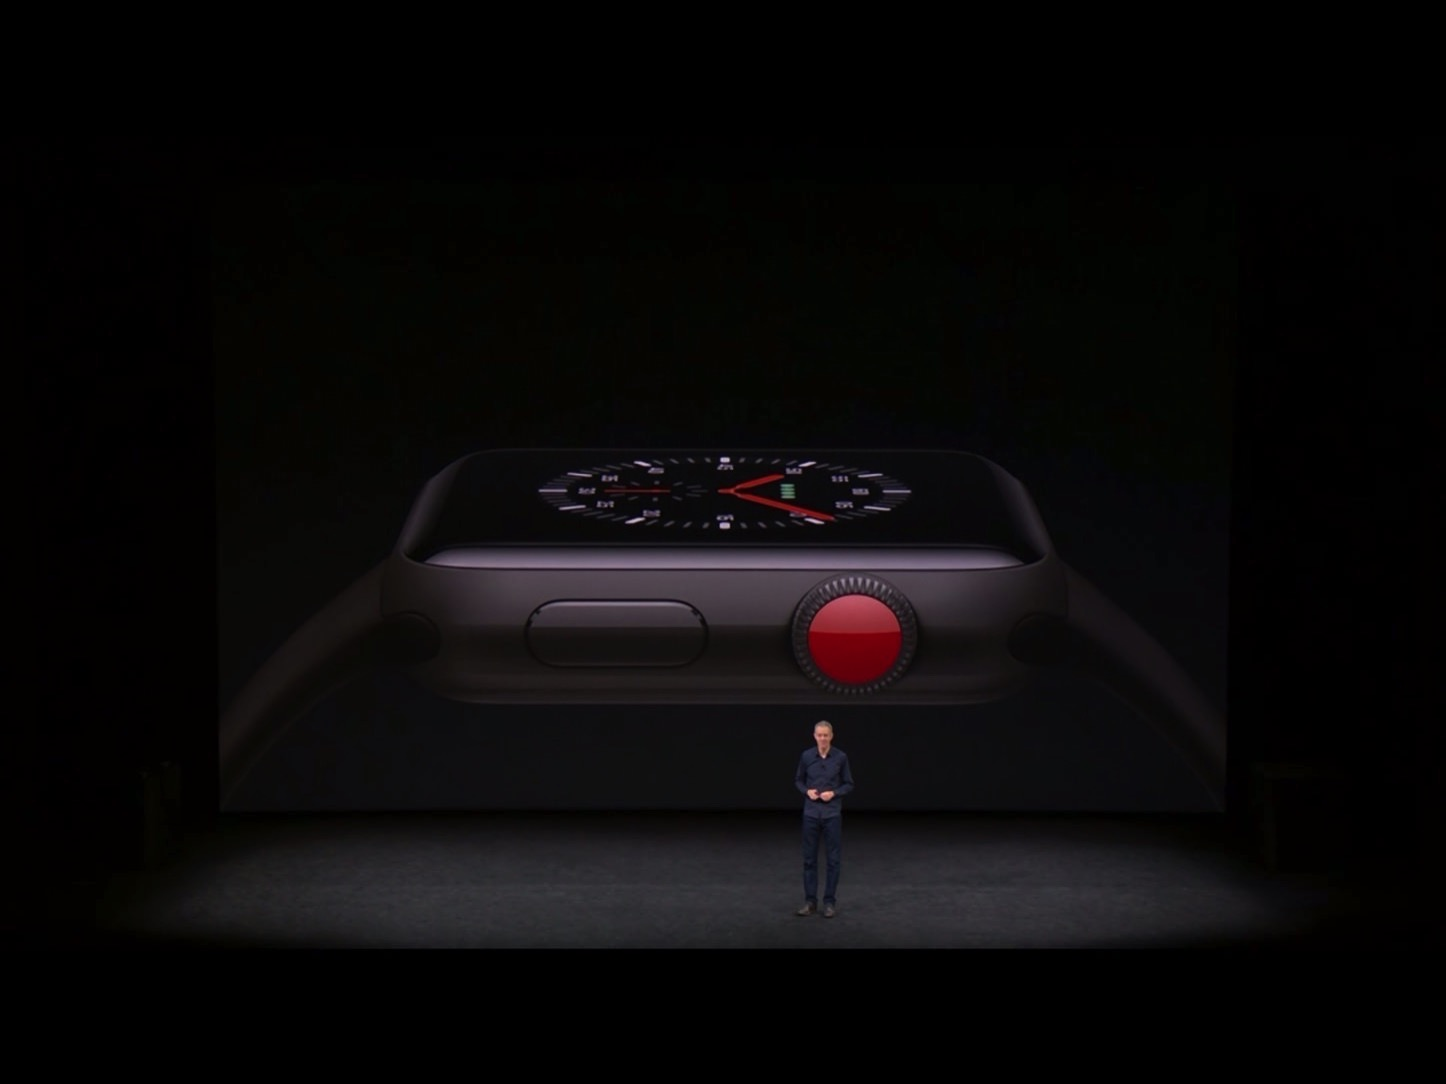 Apple-Watch-Series-3-24.jpg